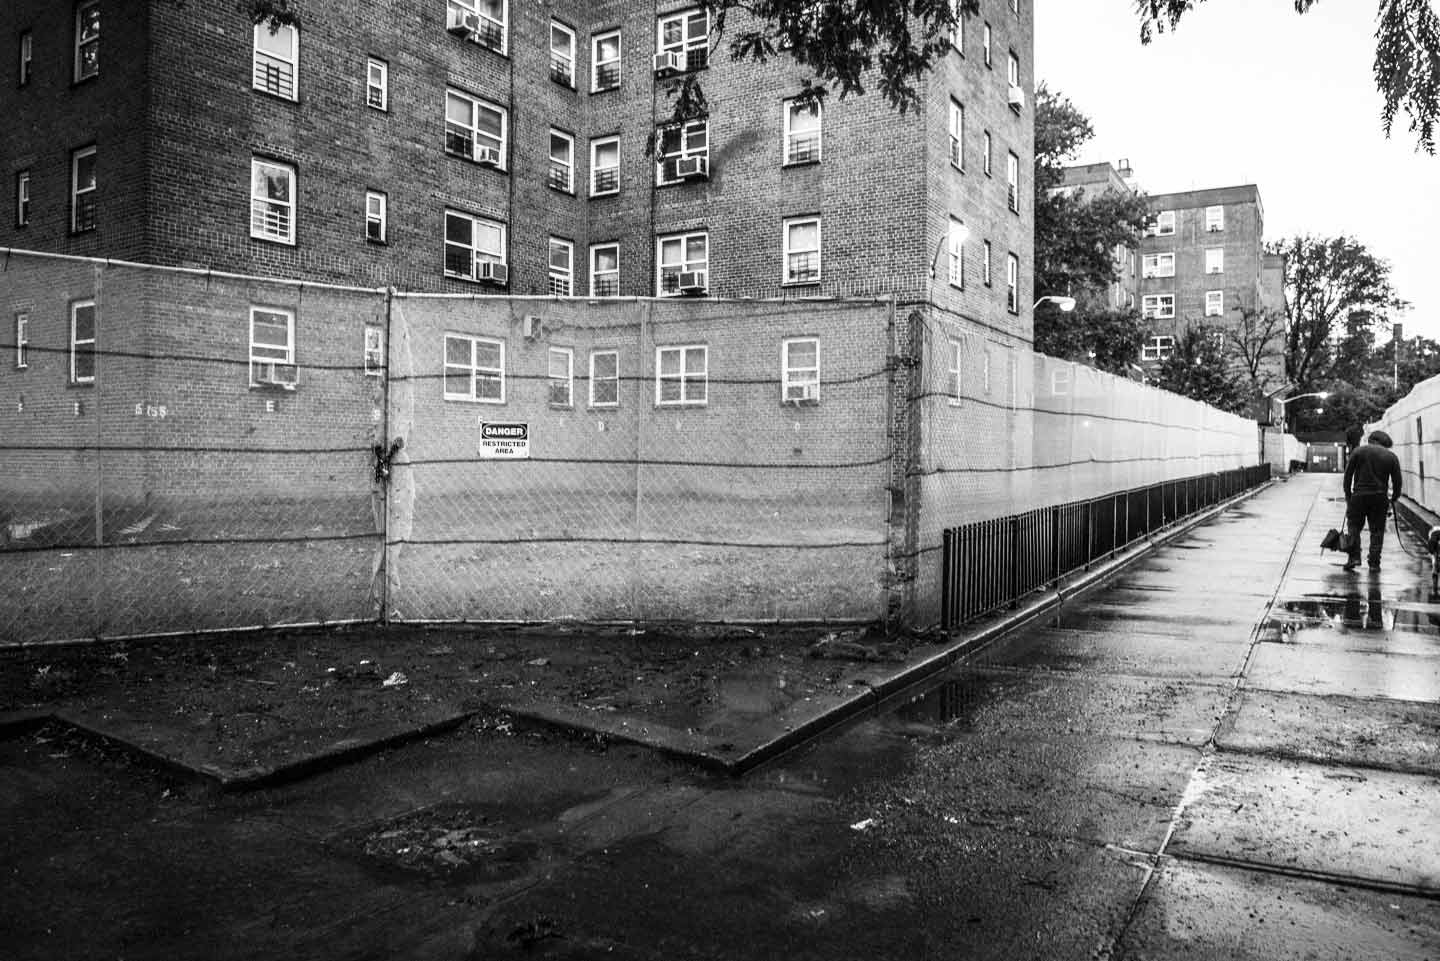 Is New York City S Public Housing Ready For The Next Storm